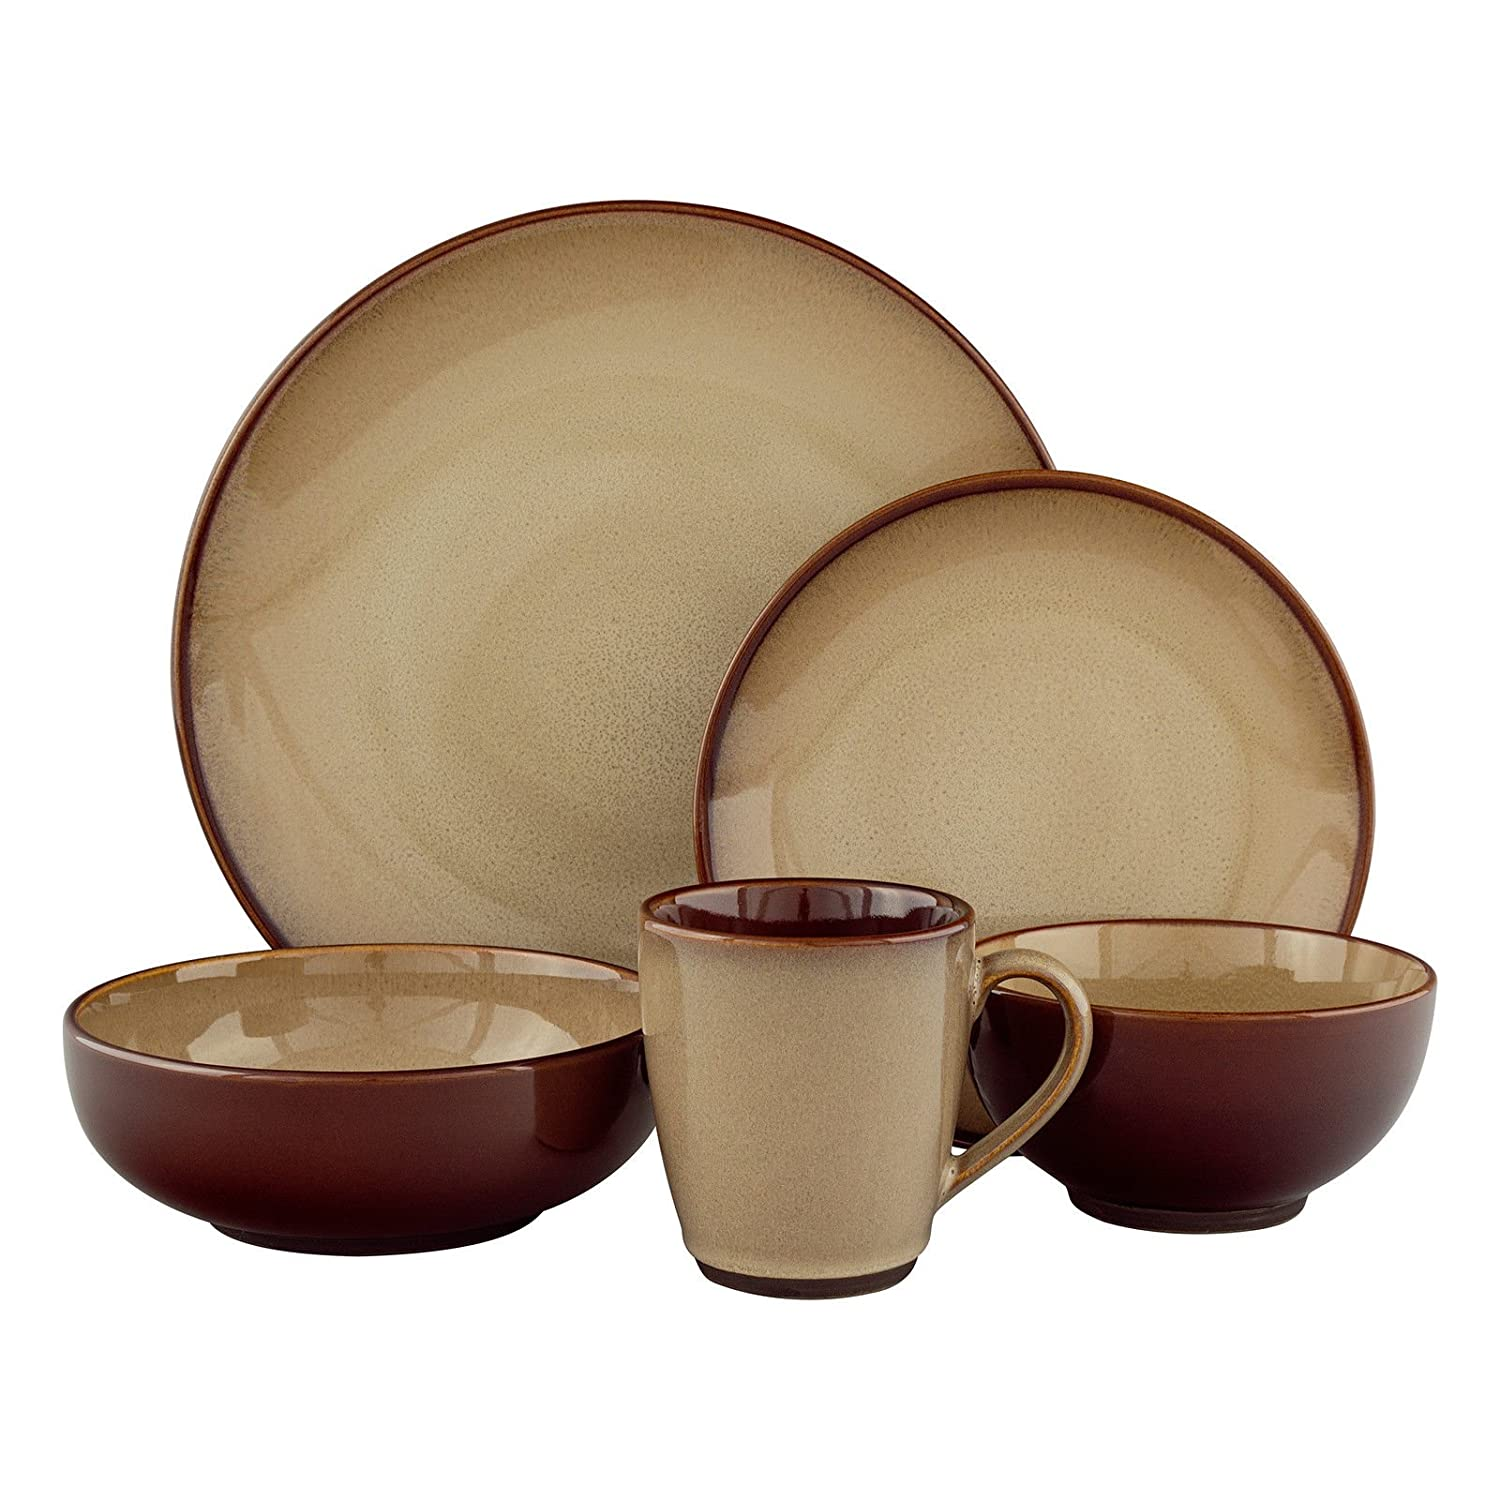 Sango 40-piece Nova Brown Stoneware Dinnerware Set Amazon.co.uk . Sango 40 Piece Nova Brown Stoneware Dinnerware Set Amazon Co Uk  sc 1 st  Best Image Engine & Marvellous Modern Dinner Sets Uk Pictures - Best Image Engine ...